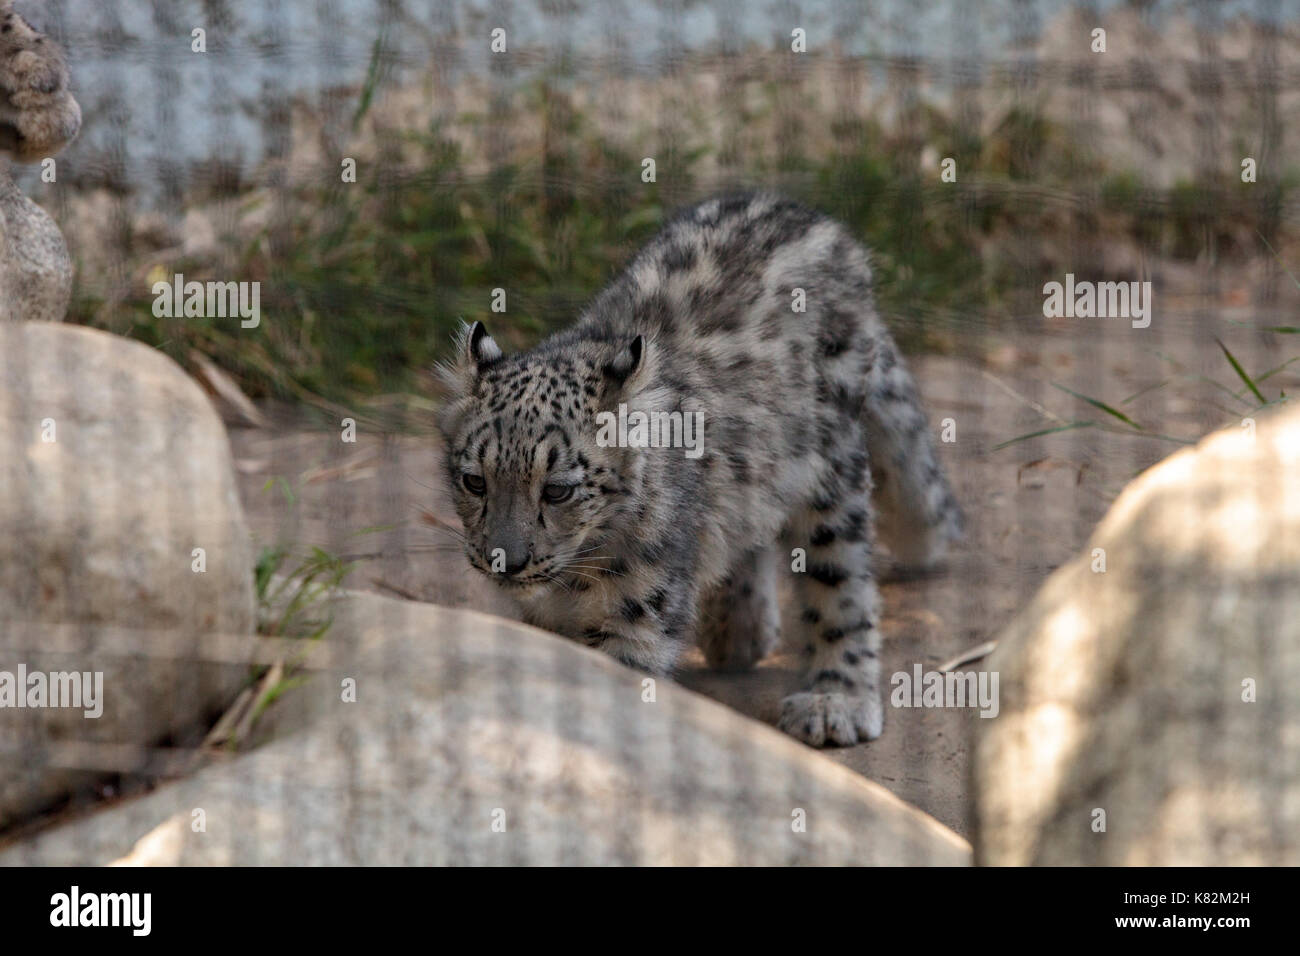 Snow leopard Panthera uncia found in the mountain ranges of